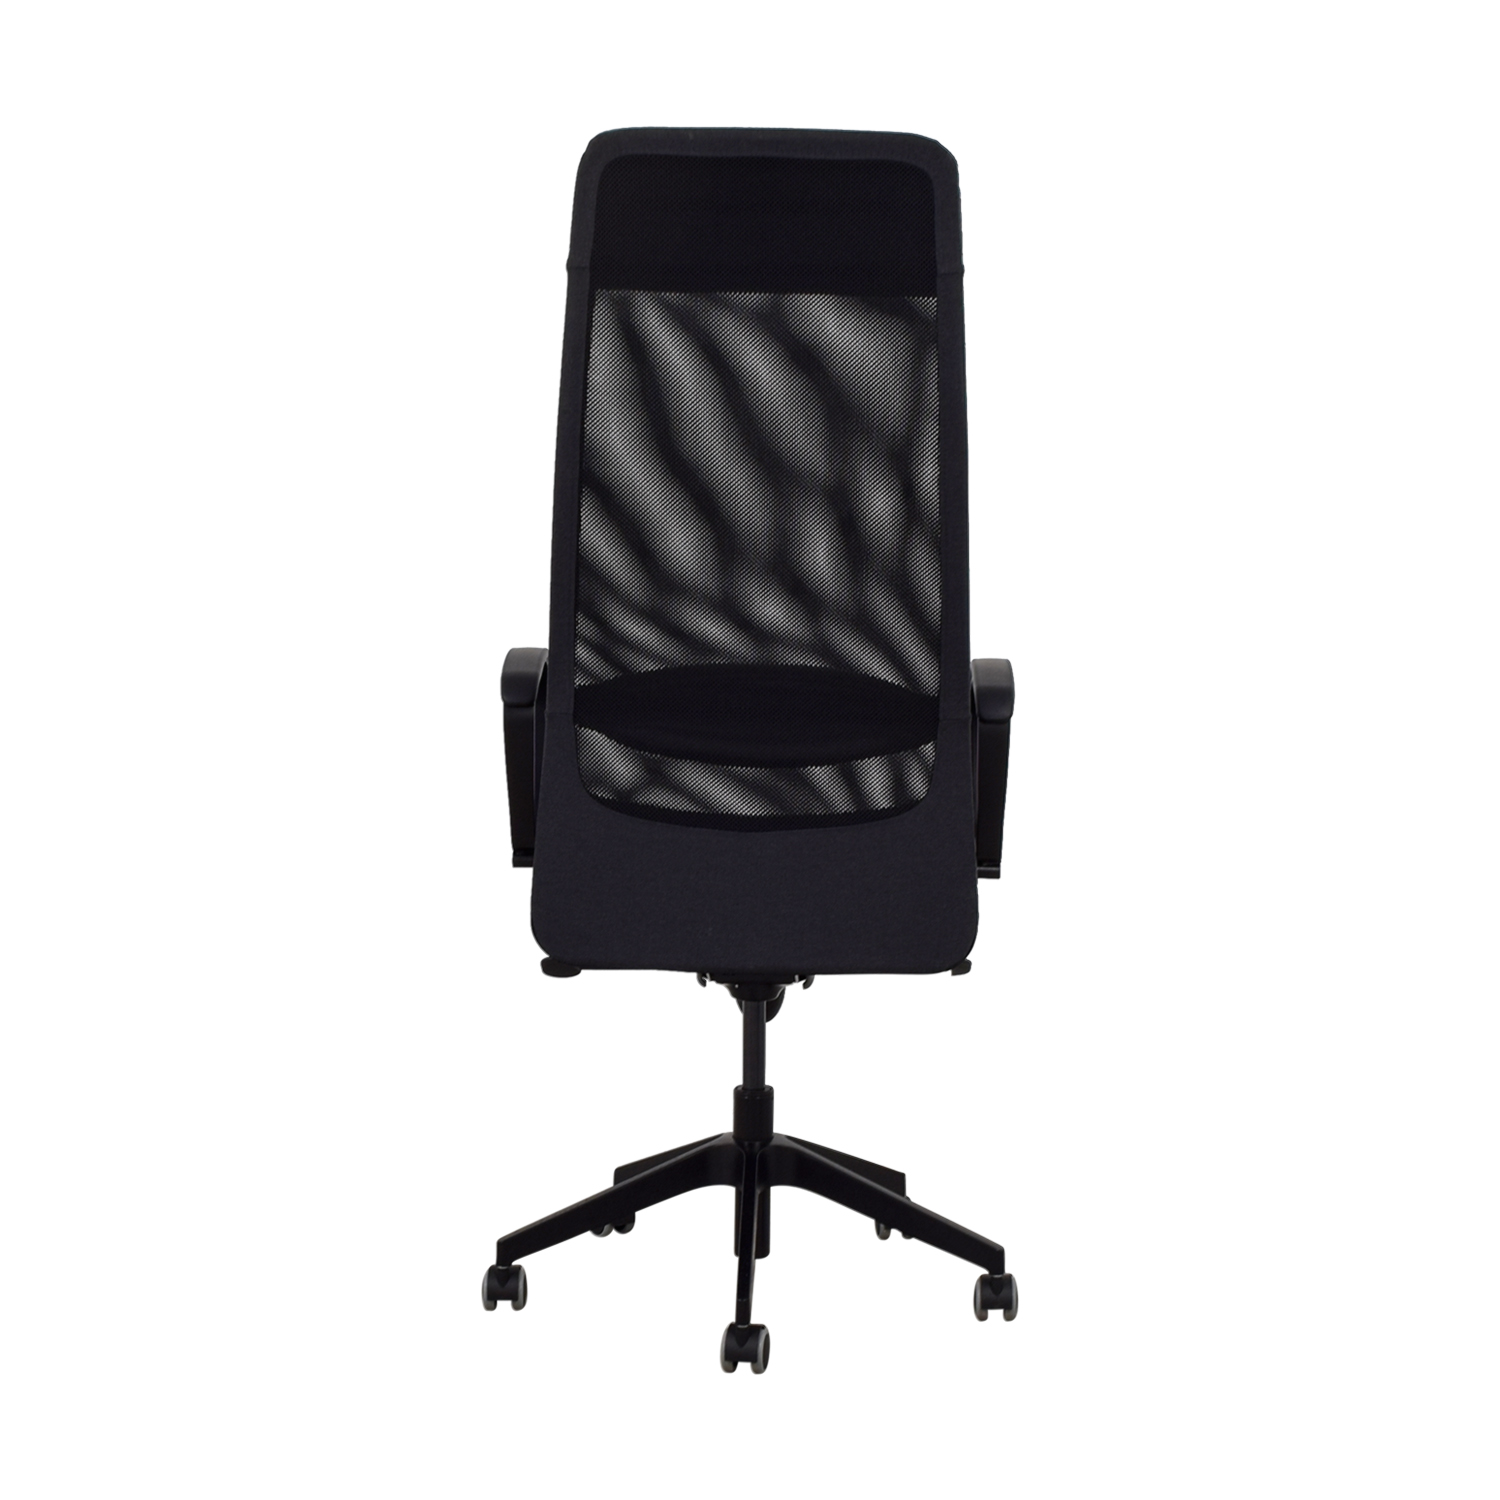 68 off ikea ikea black office chair chairs for Ikea office desk chair